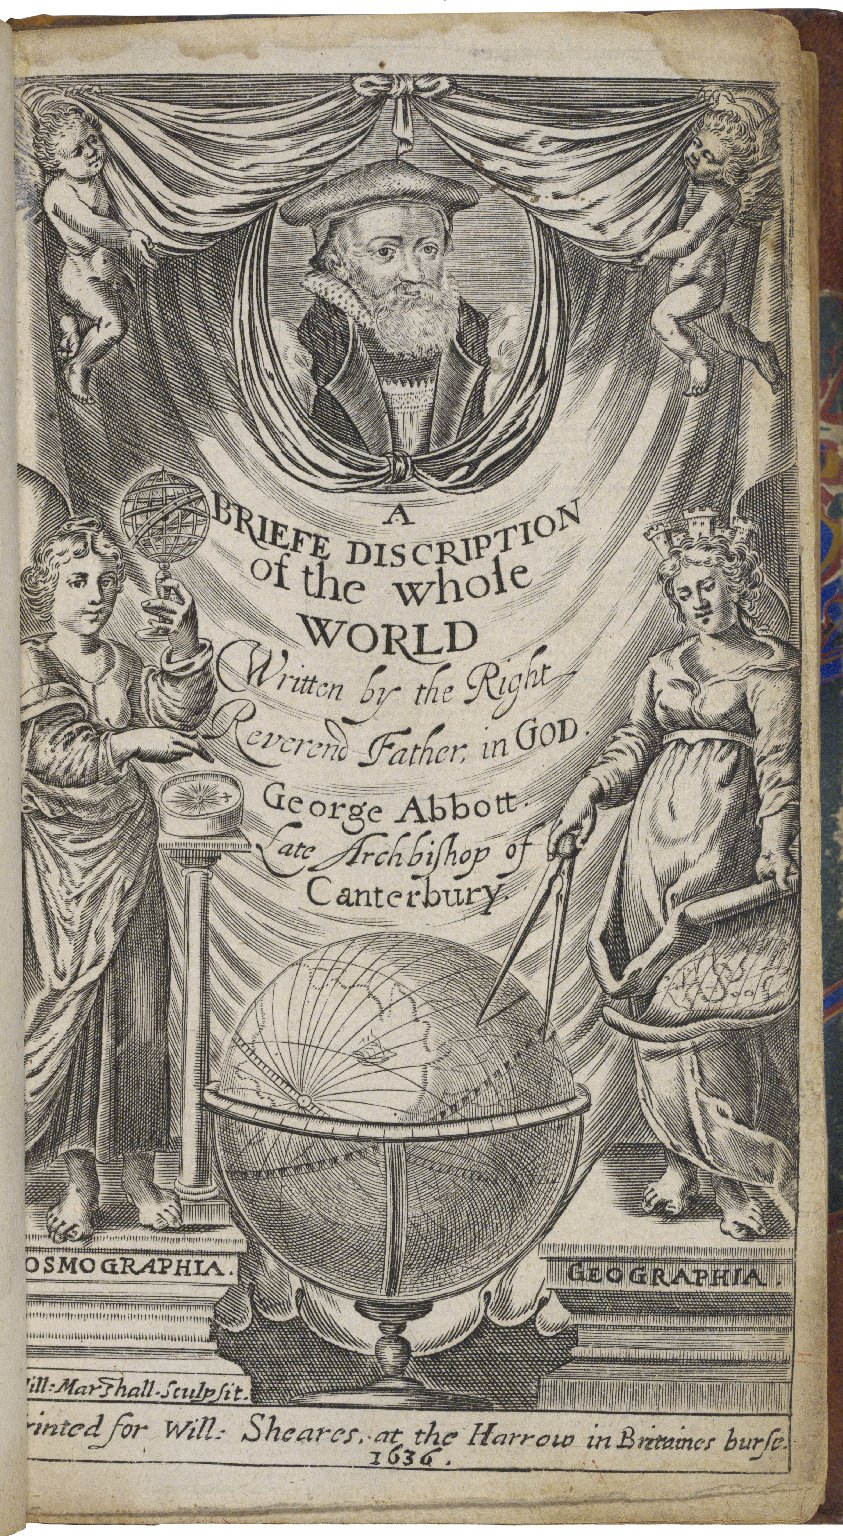 A briefe description of the whole world. Wherein is particularly described all the monarchies, empires and kingdomes of the same, with their academies. As also their severall titles and situations thereunto adjoyning. Written by the most Reverend Father i